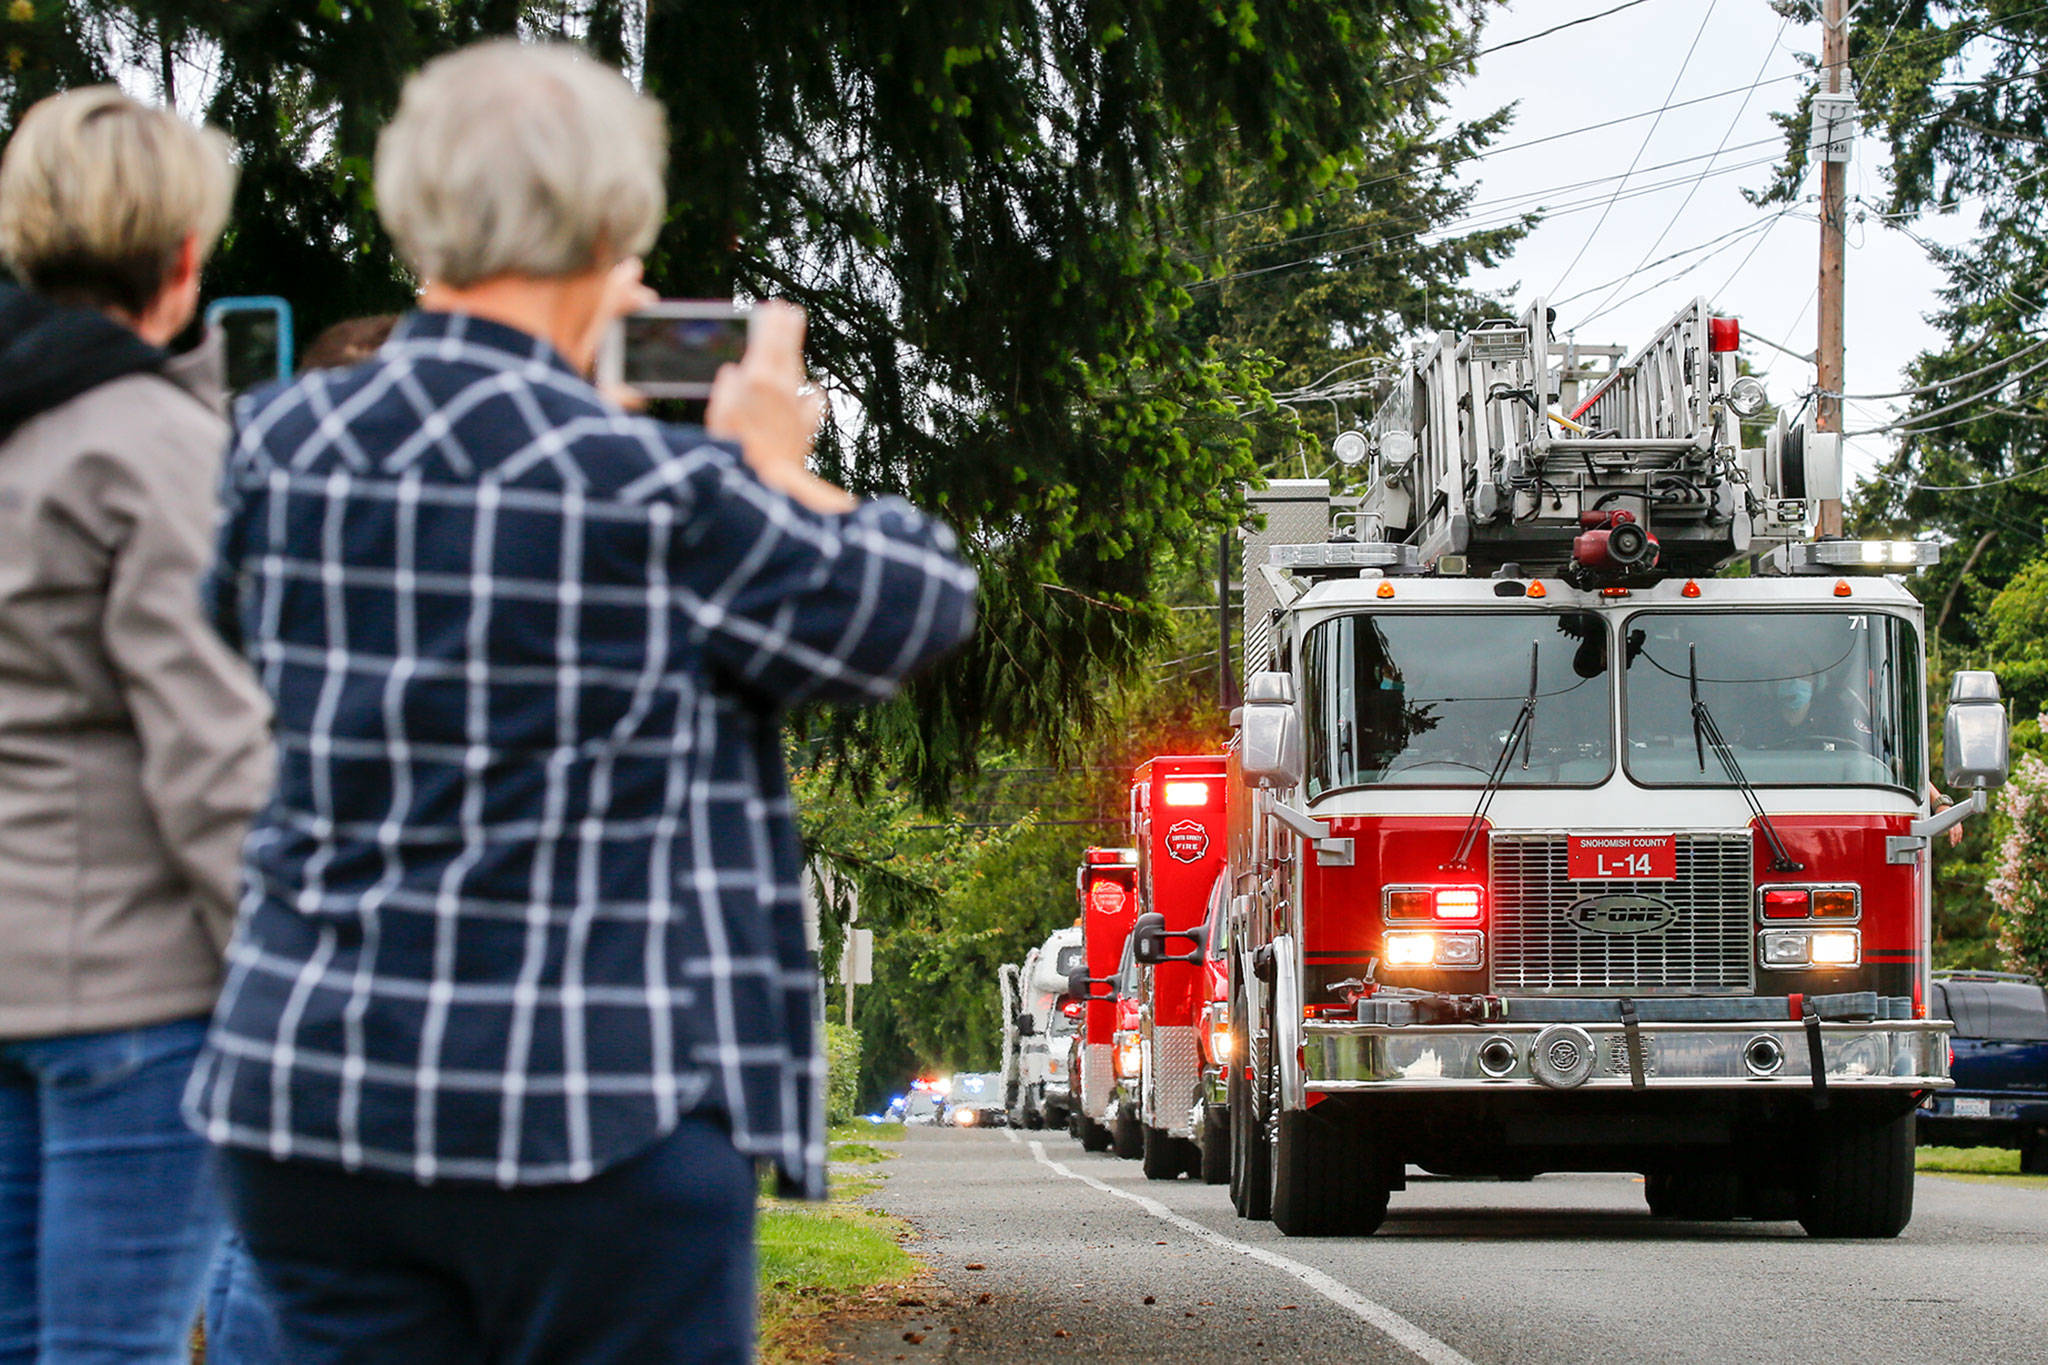 First responders parade past Eli Kincaid's home Tuesday afternoon in Lynnwood. Before the pandemic, Eli's family had planned a Make-a-Wish trip to Disneyland. (Kevin Clark / The Herald)